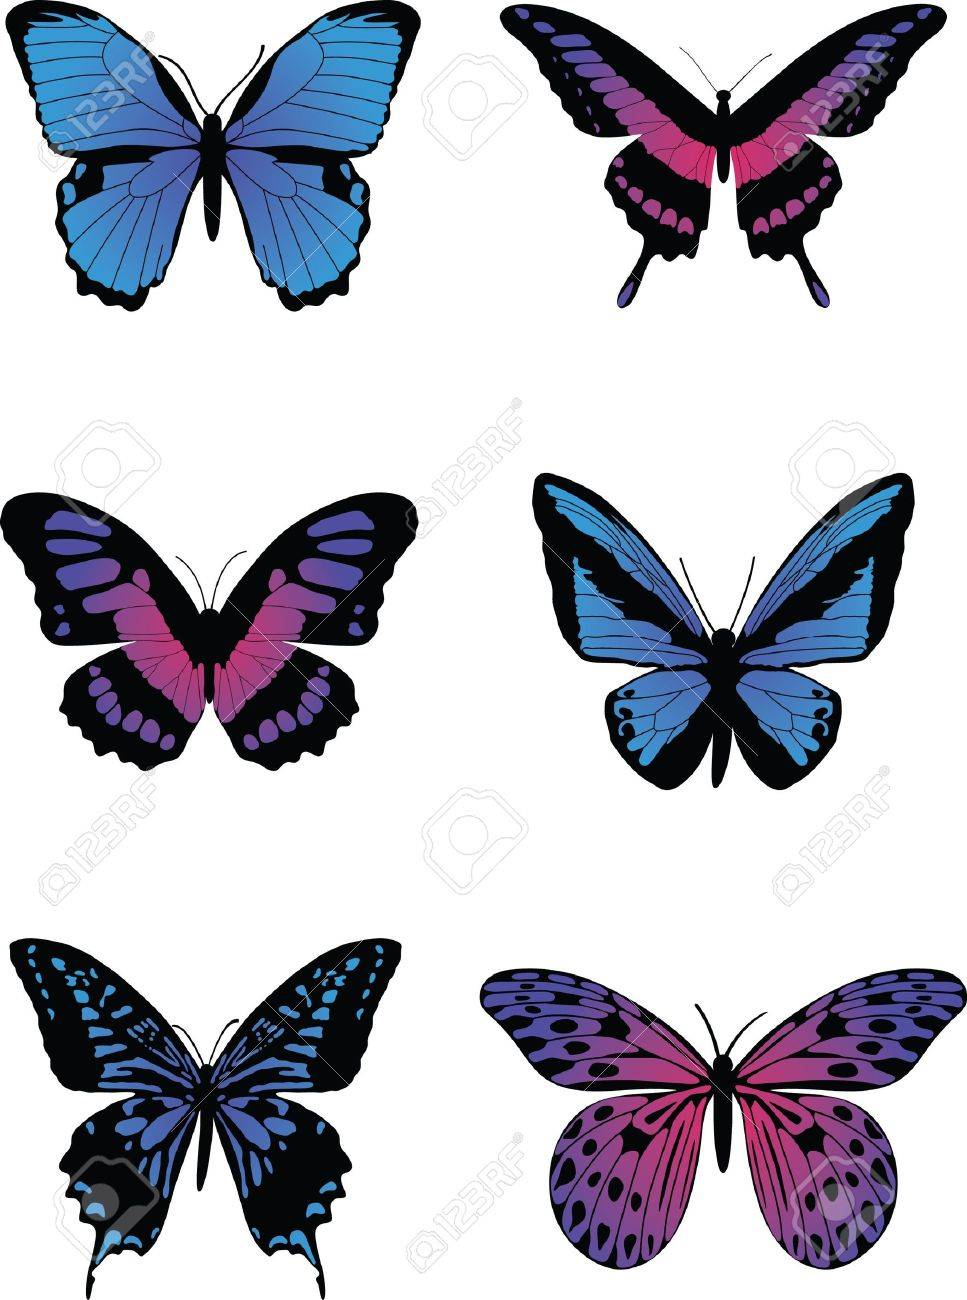 Colorful Butterflies Stock Vector - 16512859